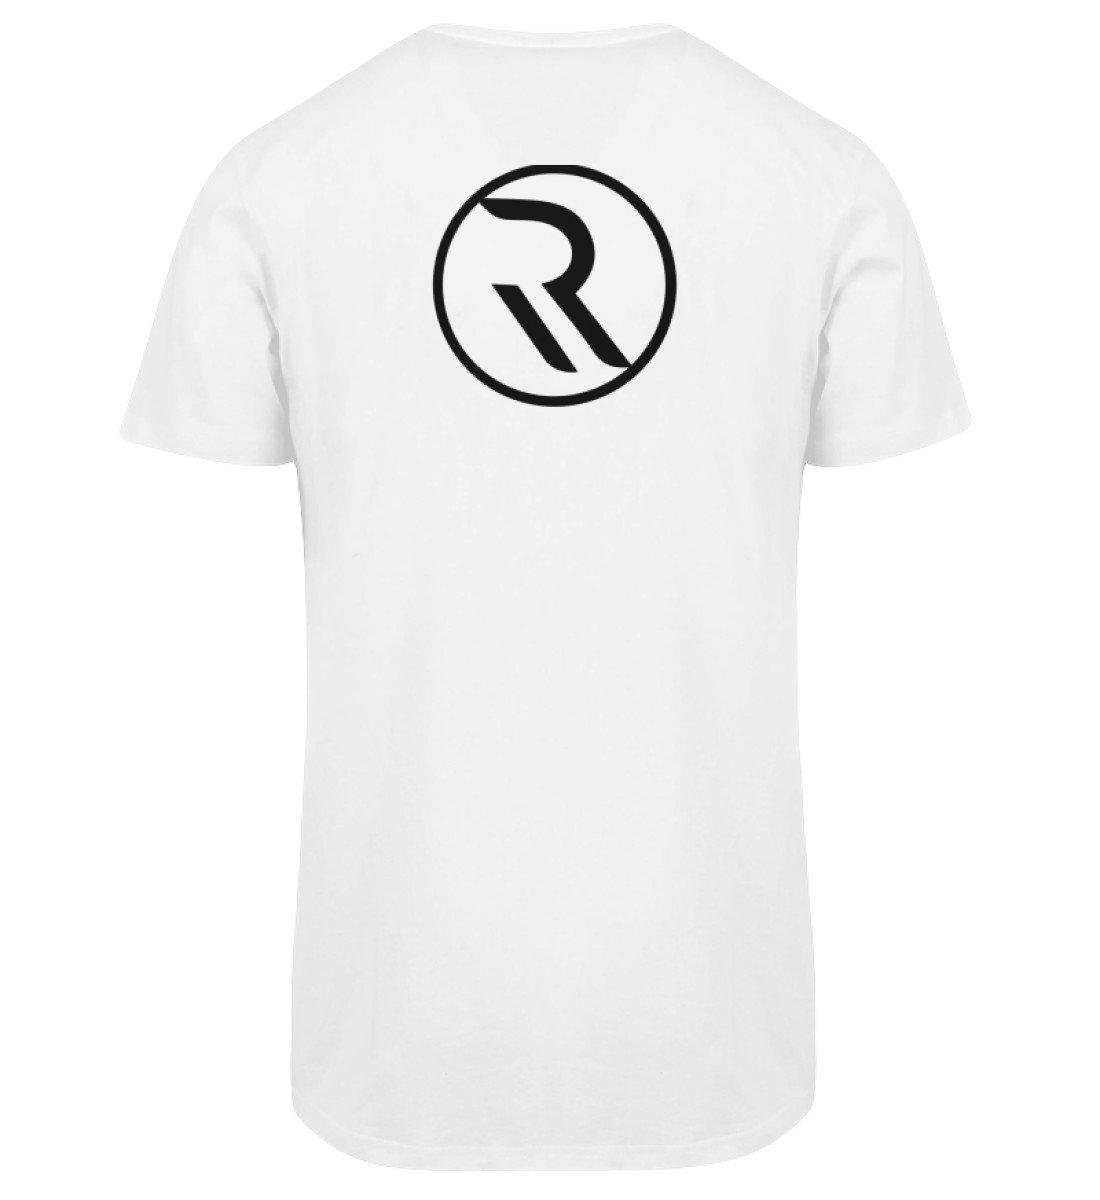 ROPEMAKER RAVE-ON!®️ WHITE LONG SHIRT - Herren Long Tee Men Long Tee White / S - Rave On!® der Club & Techno Szene Shop für Coole Junge Mode Streetwear Style & Fashion Outfits + Sexy Festival 420 Stuff